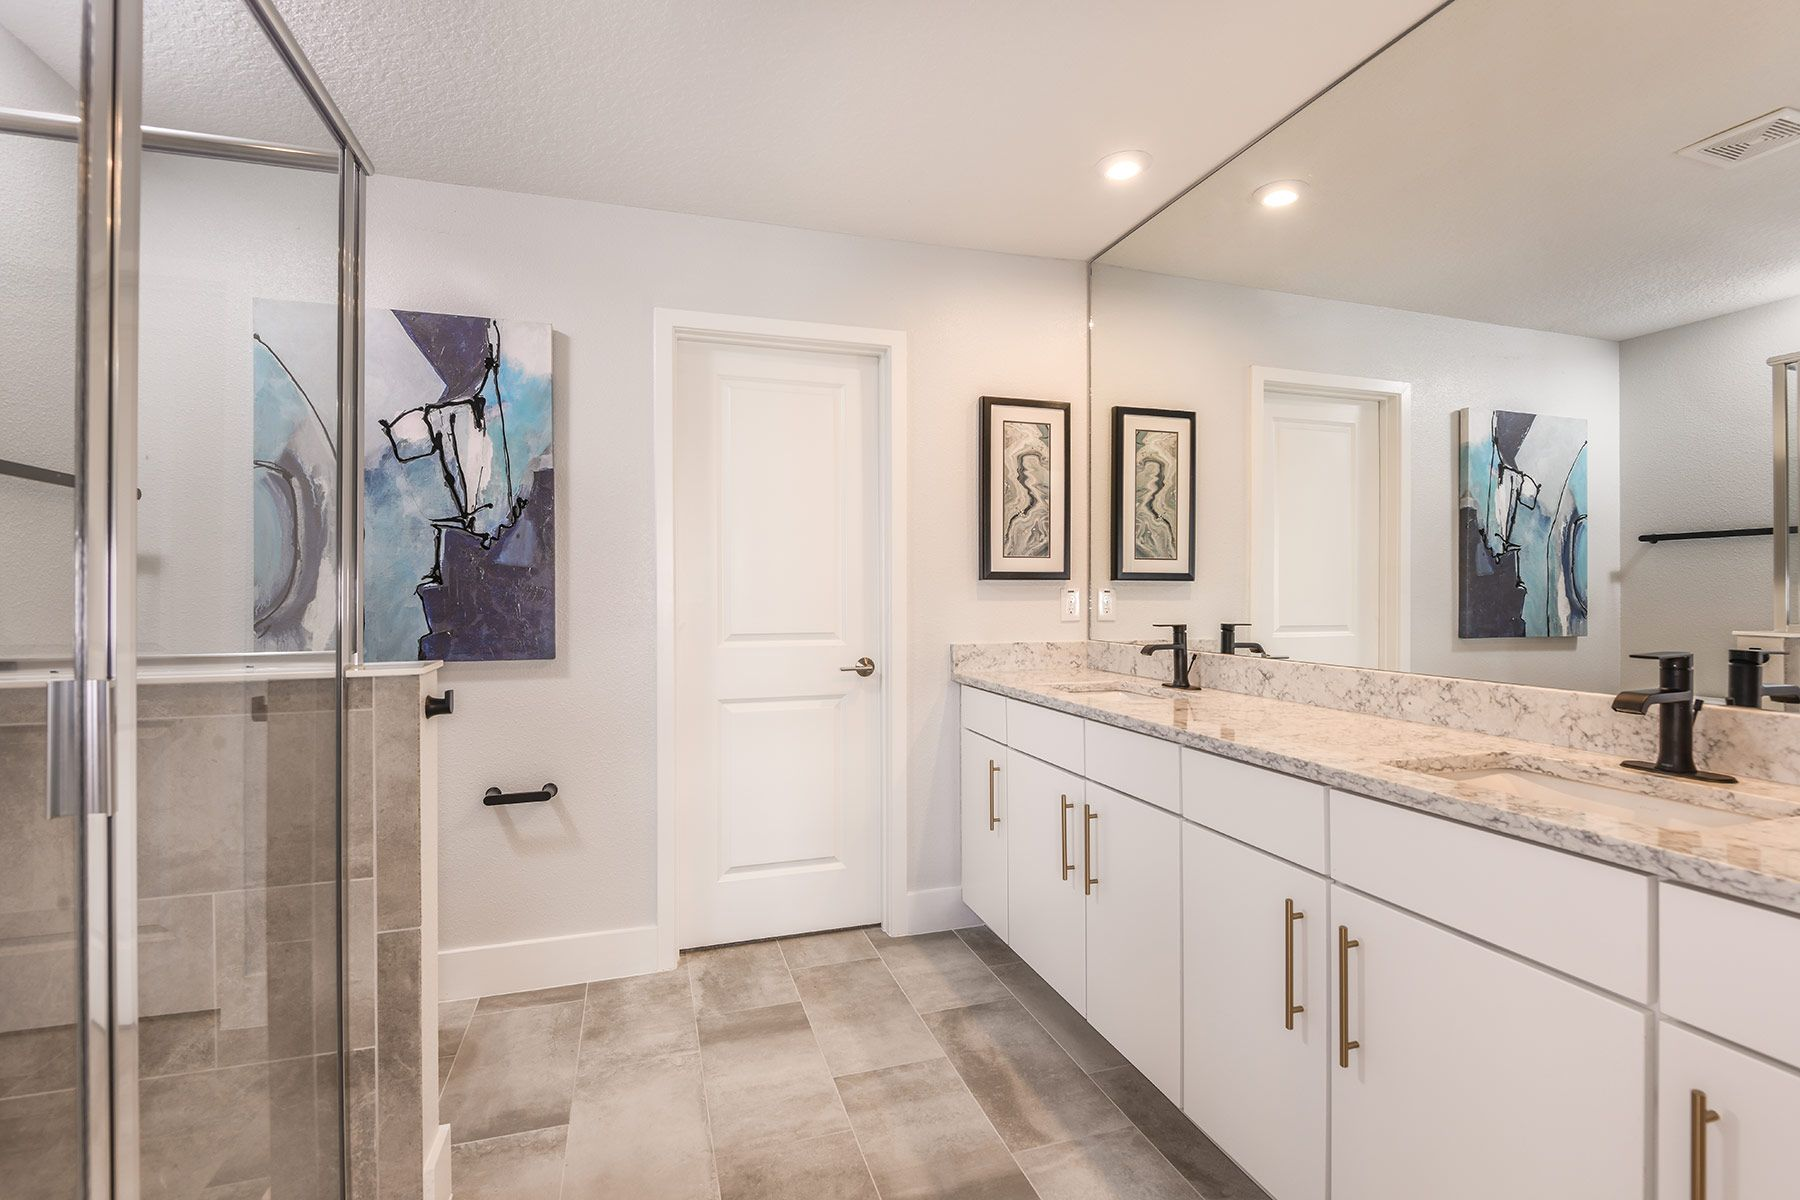 Bathroom featured in the Marianna By Mattamy Homes in Tampa-St. Petersburg, FL